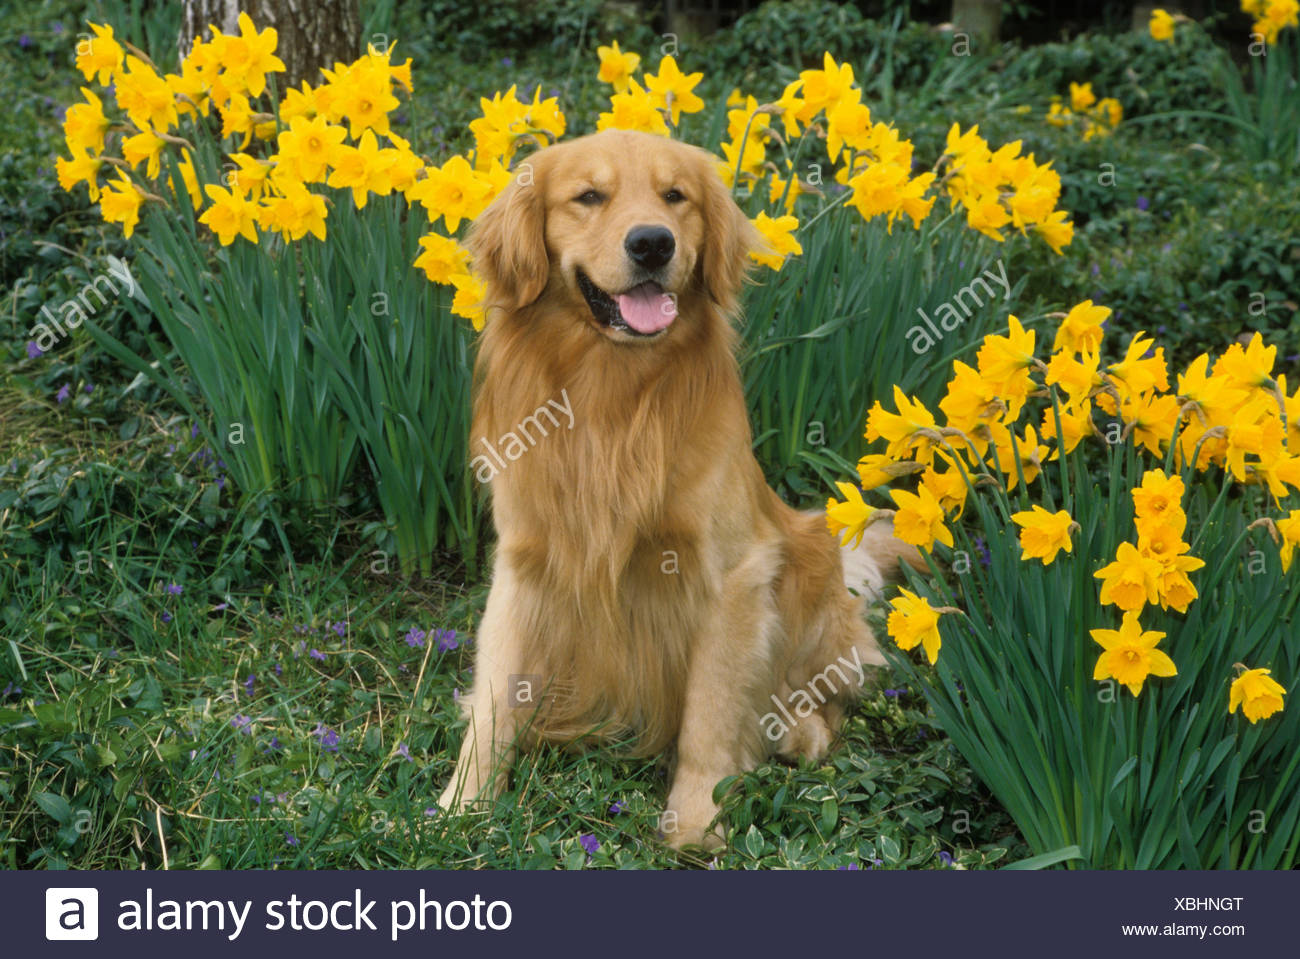 Portrait of Golden Retriever dog with daffodils in background 1300x959